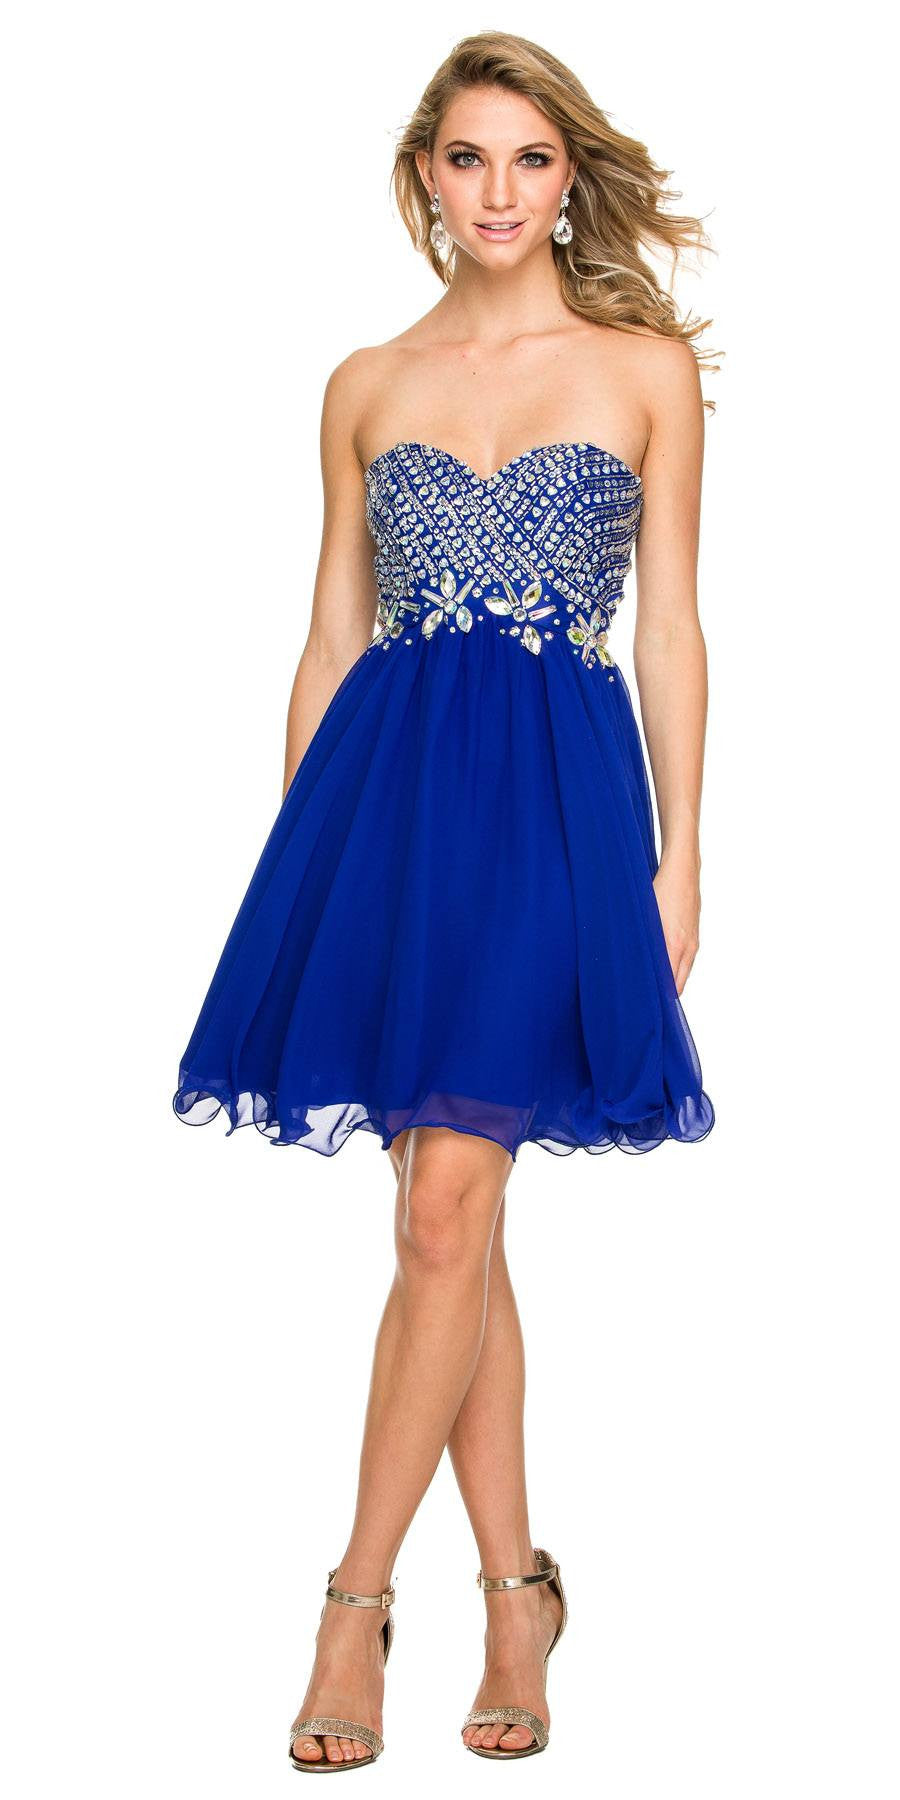 Short Strapless Homecoming Dress Sweetheart Neckline Royal Blue